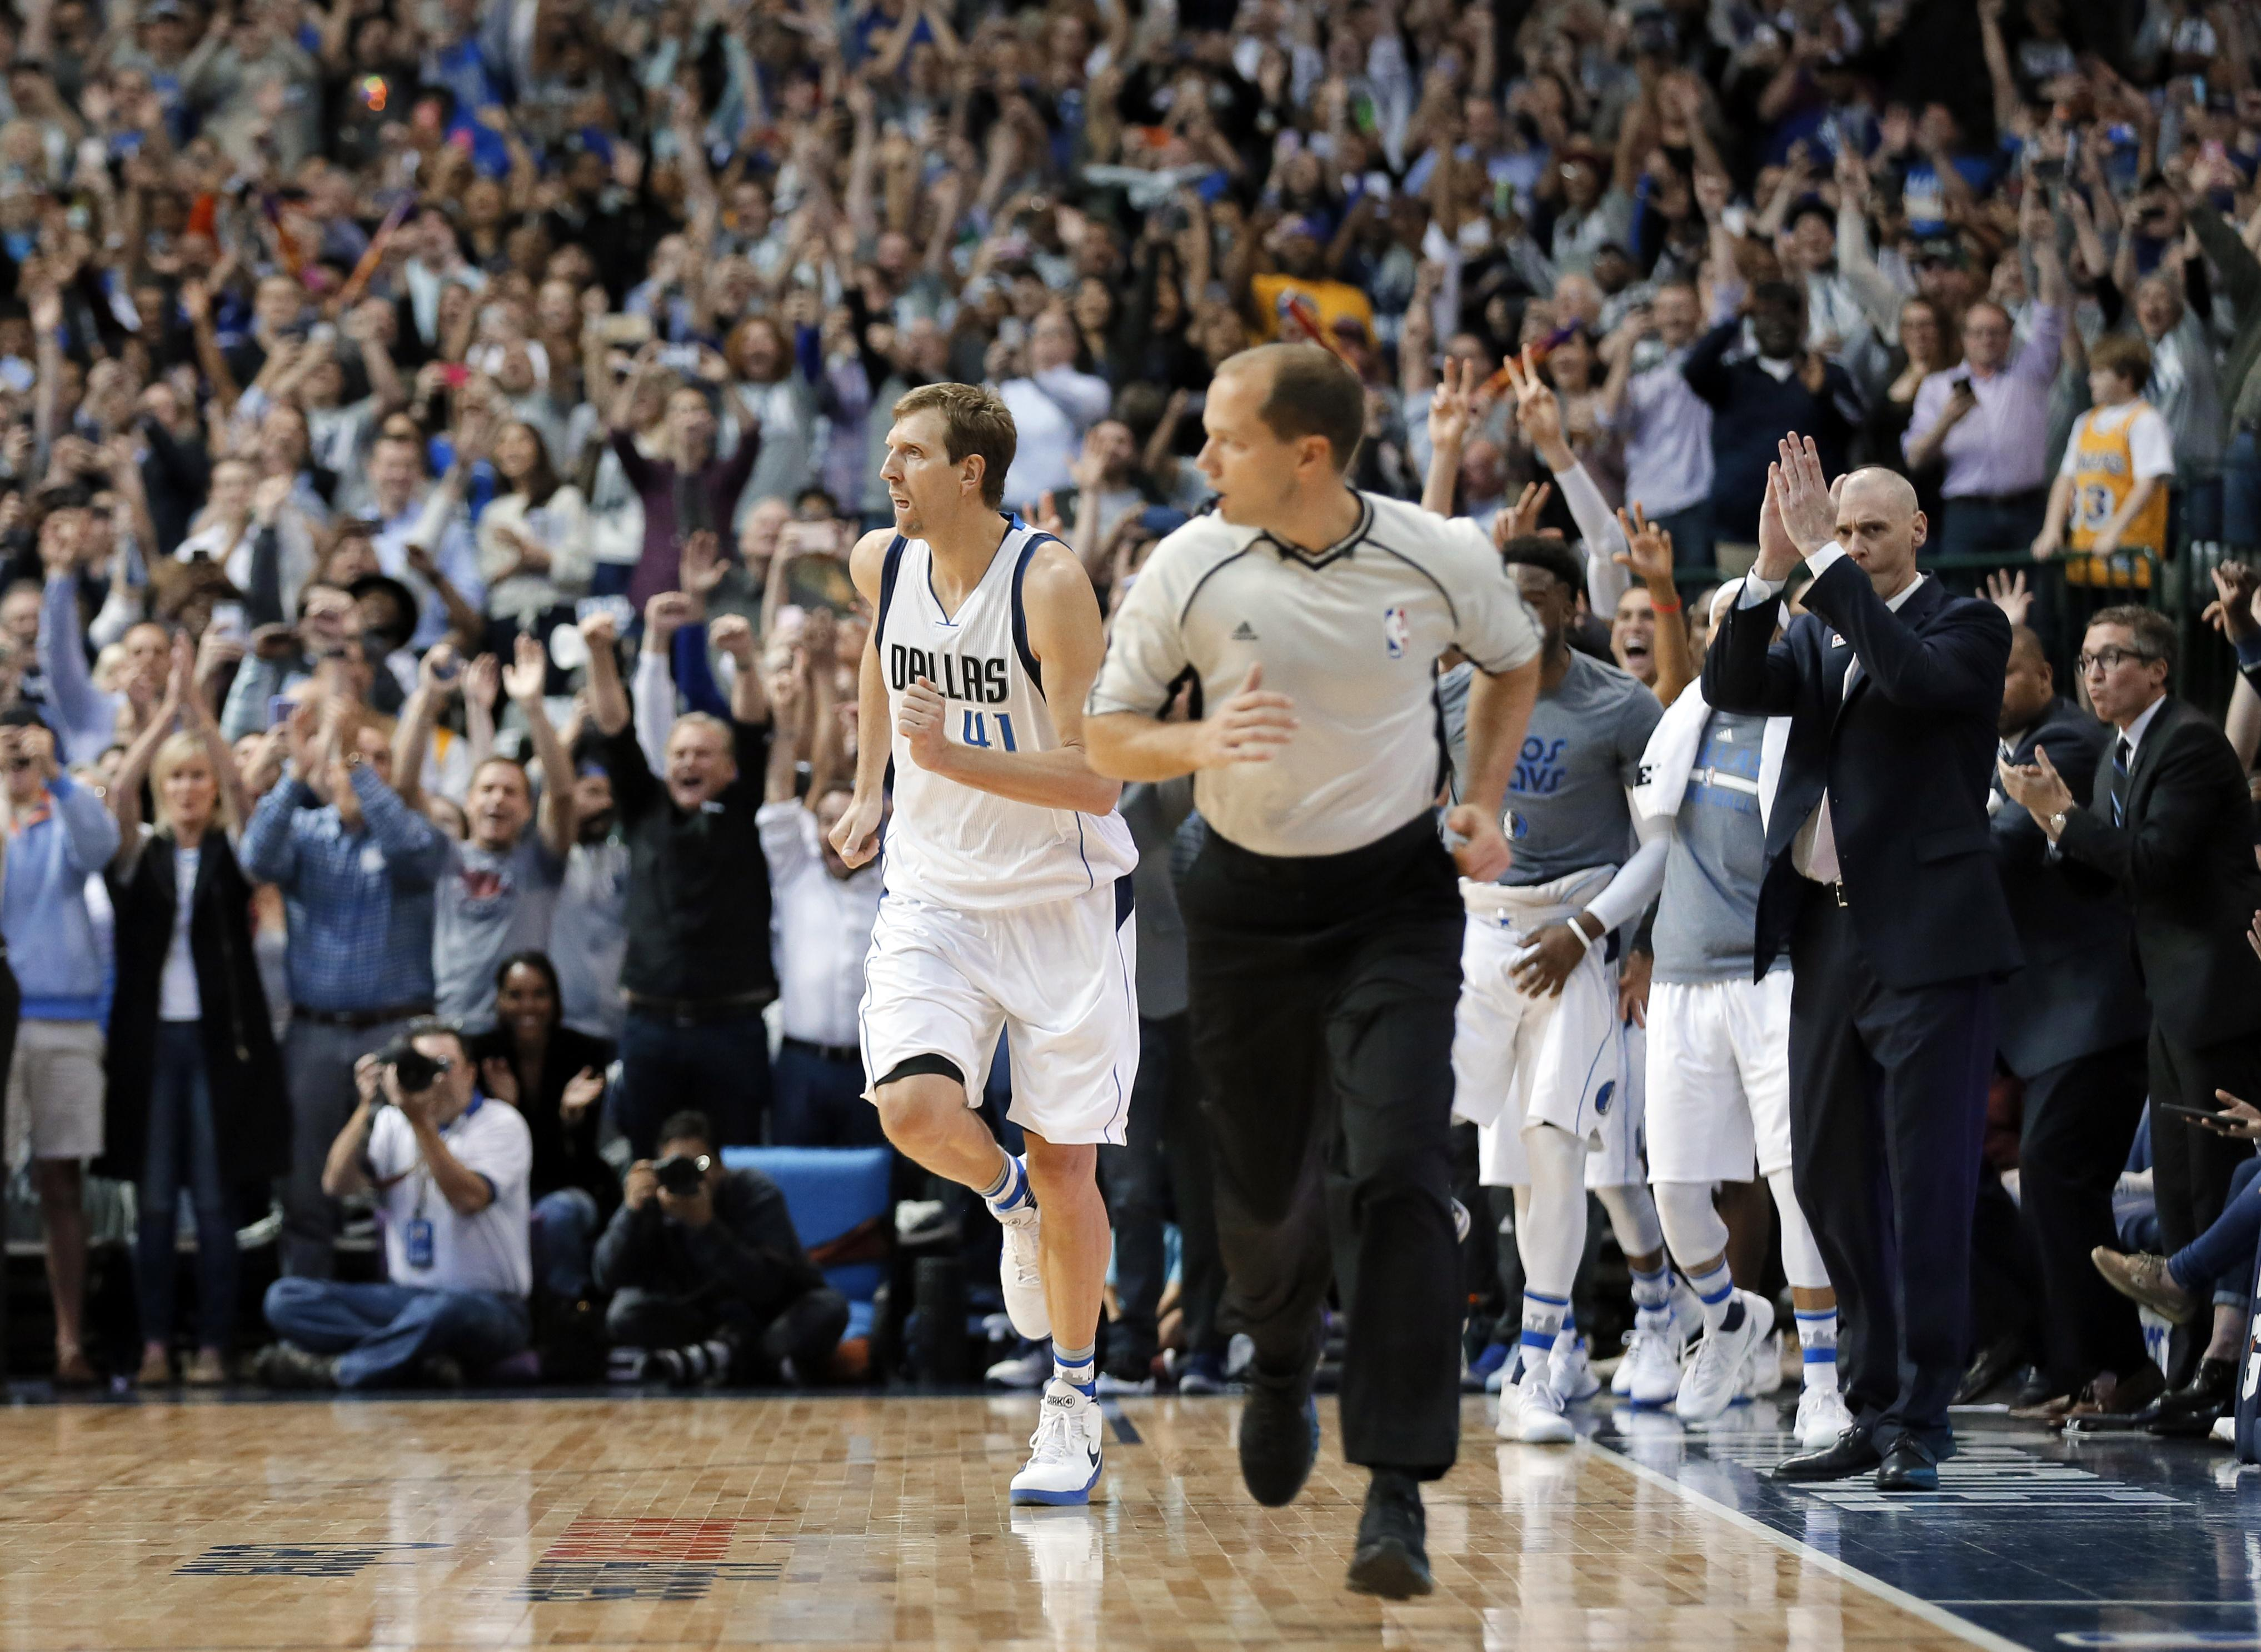 6861c336b Fans stand and cheer after Dirk Nowitzki (41) sunk a basket to reach his